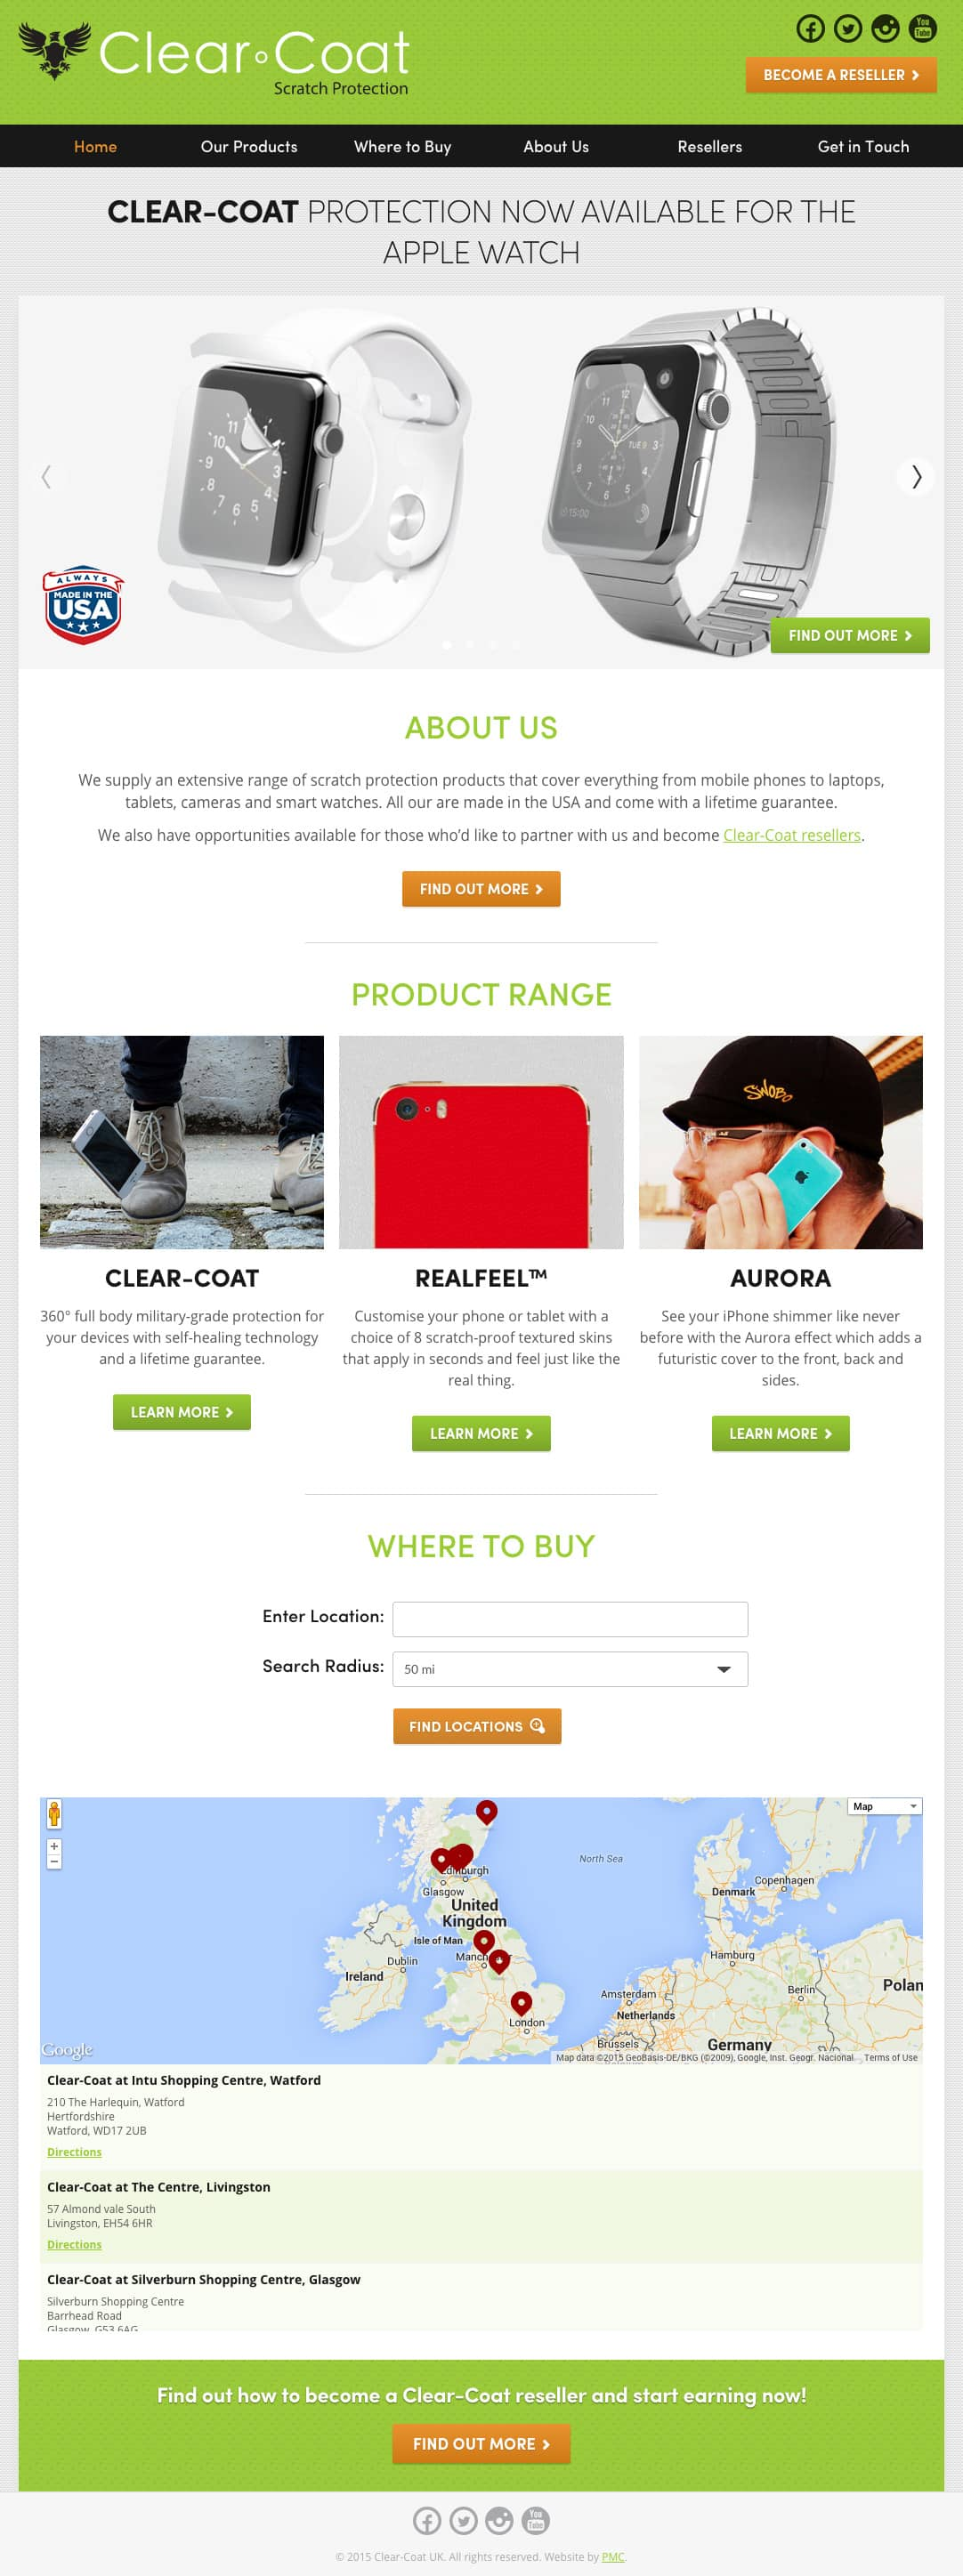 Clear-Coat UK Home Page